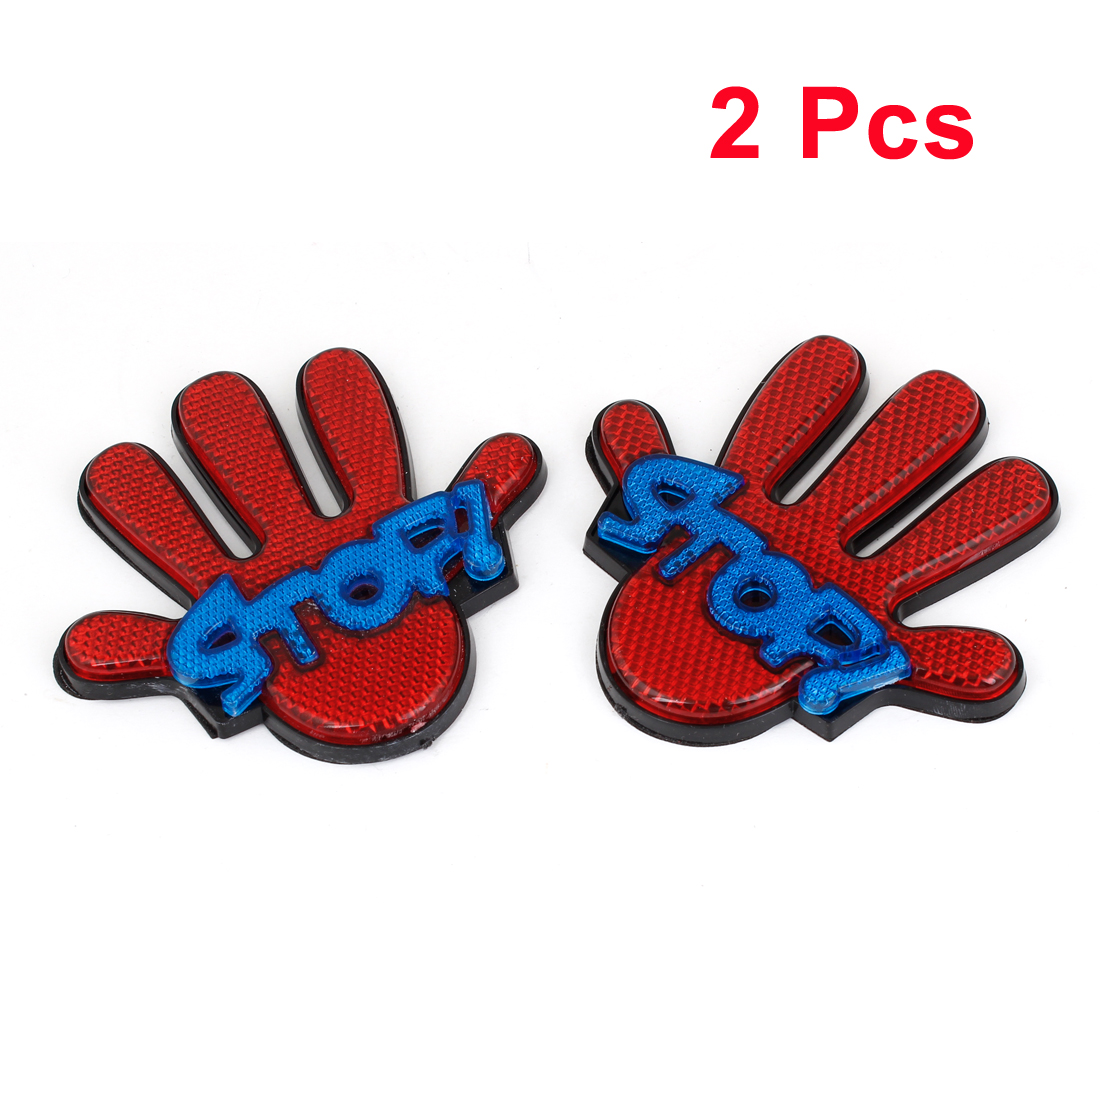 2pcs Van Car Truck Red Blue Plastic Palm Shaped Reflective Sticker